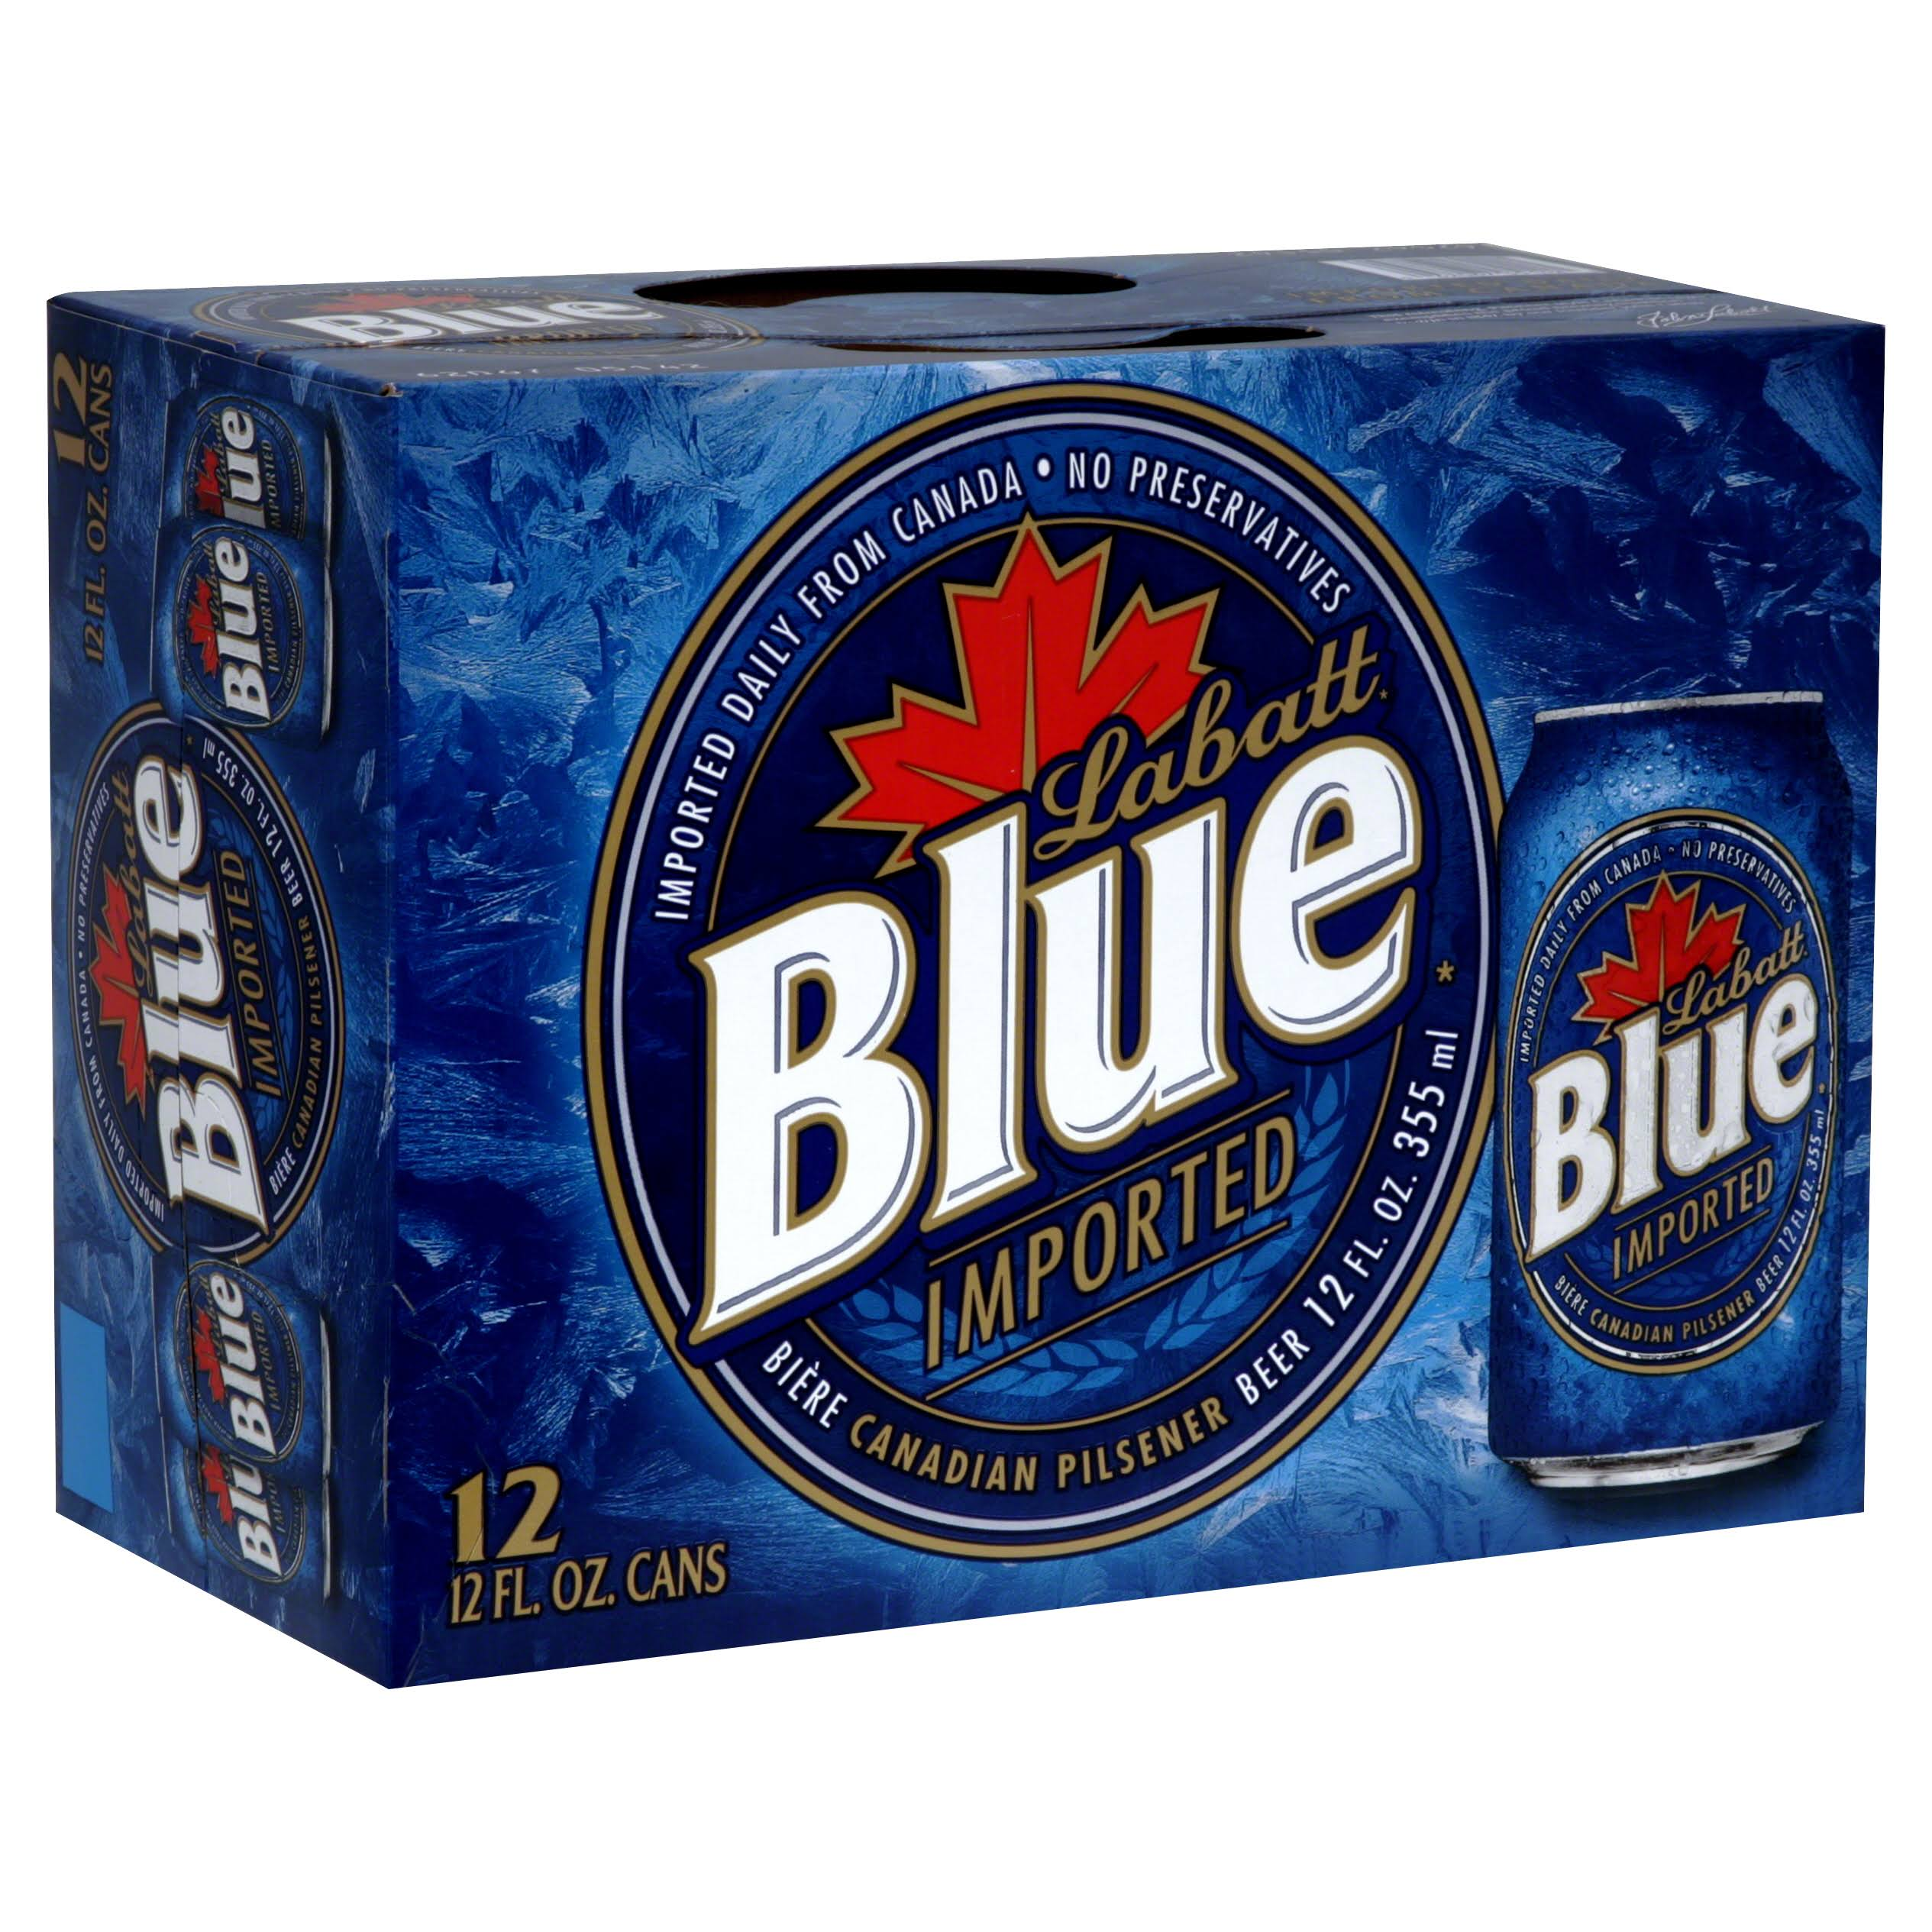 Labatt Blue Beer Canadian Pilsener Beer - 12oz, 12 Pack